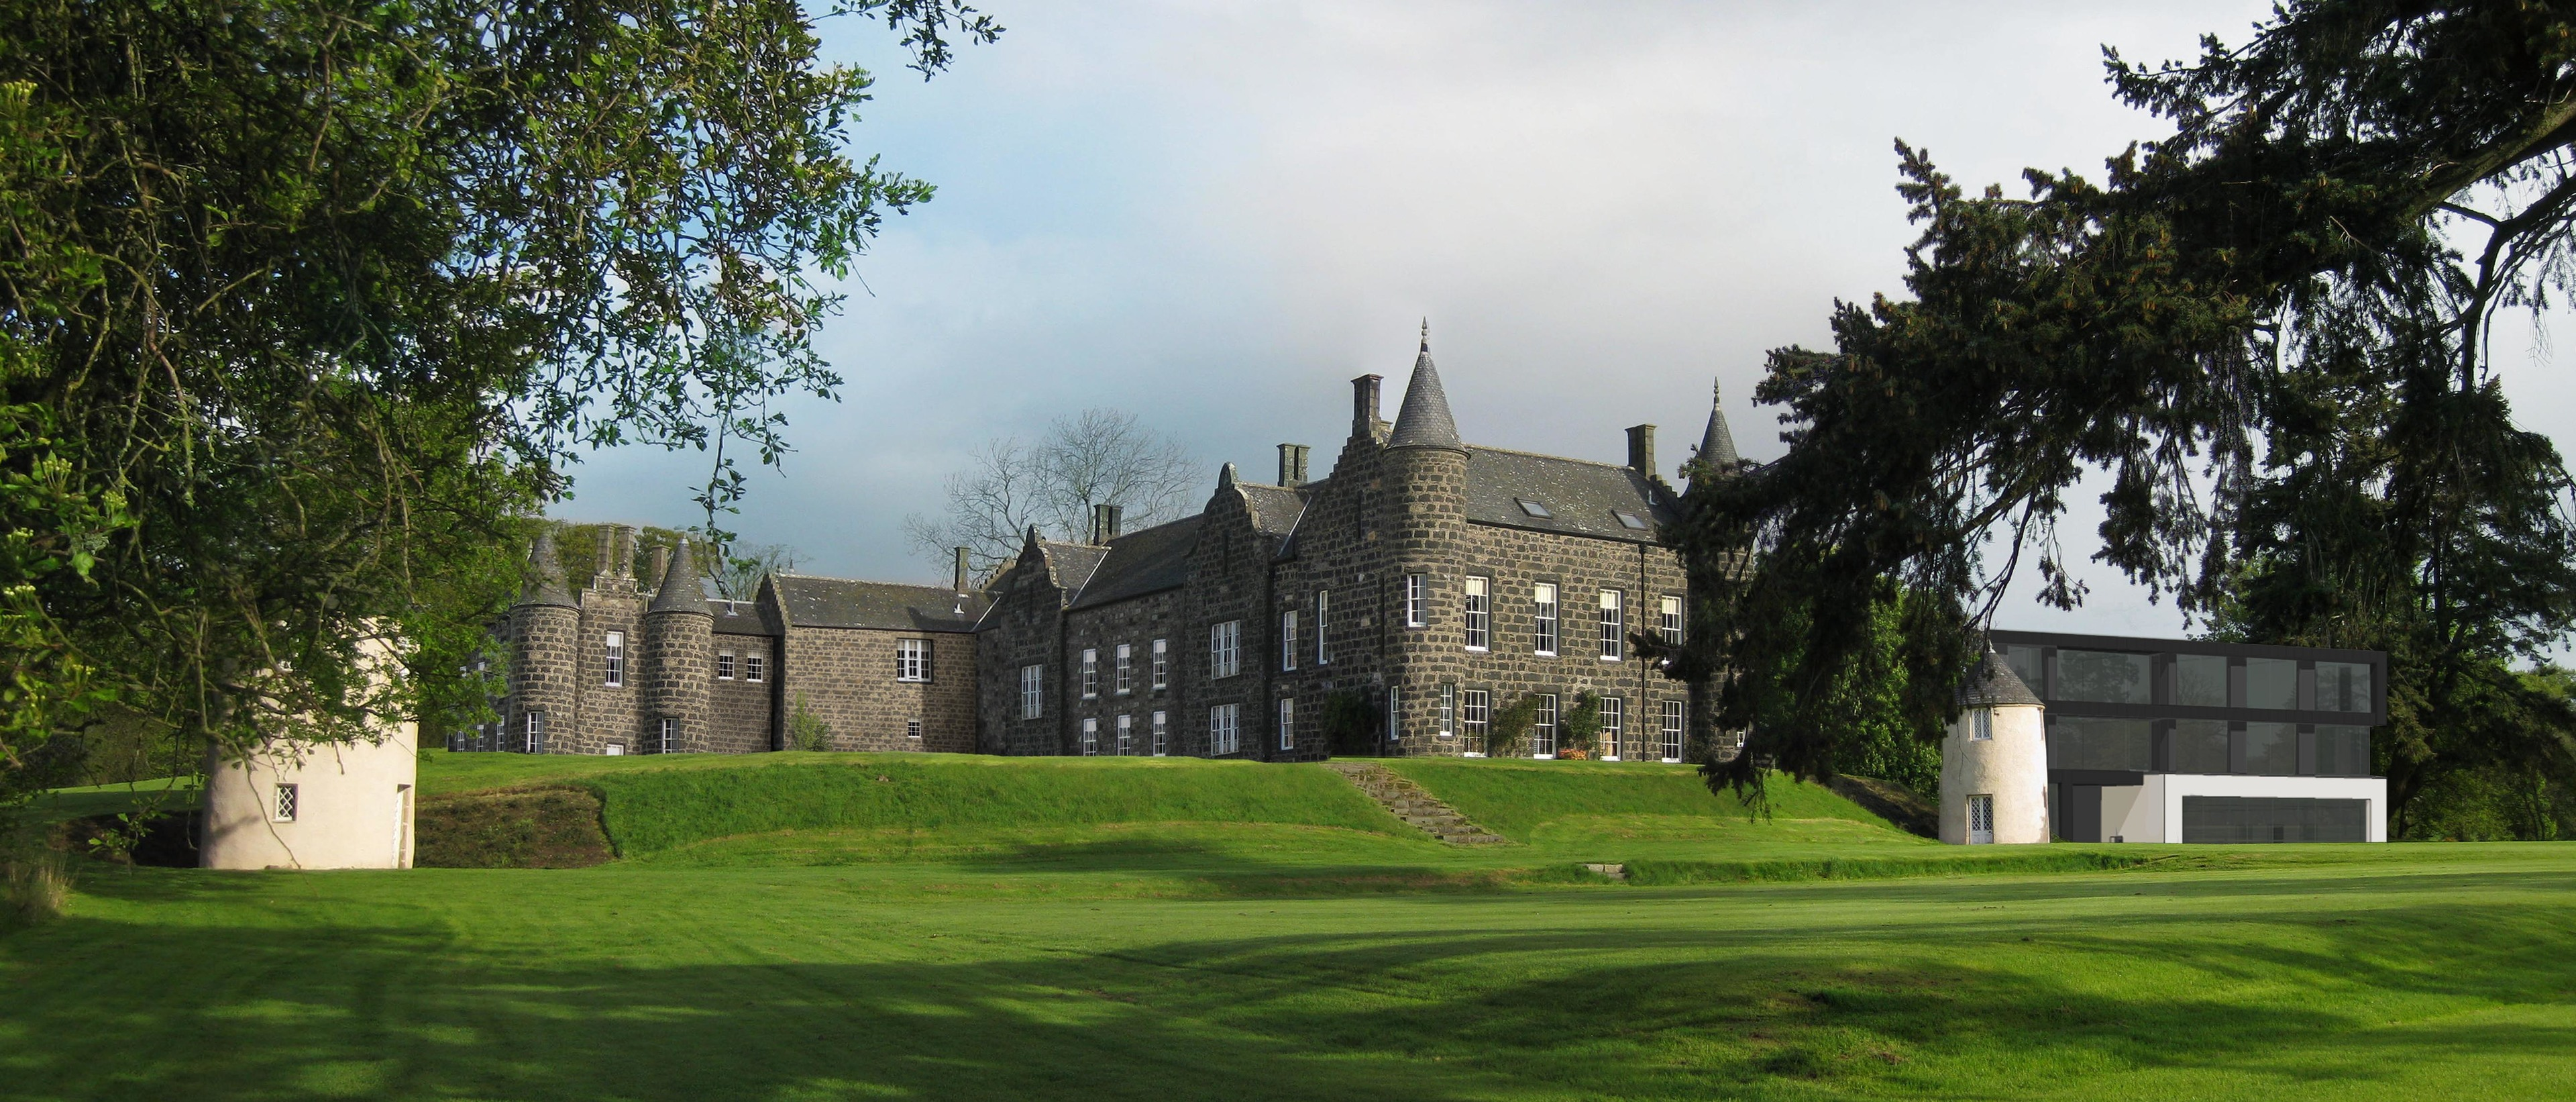 How the plans for Meldrum House might look